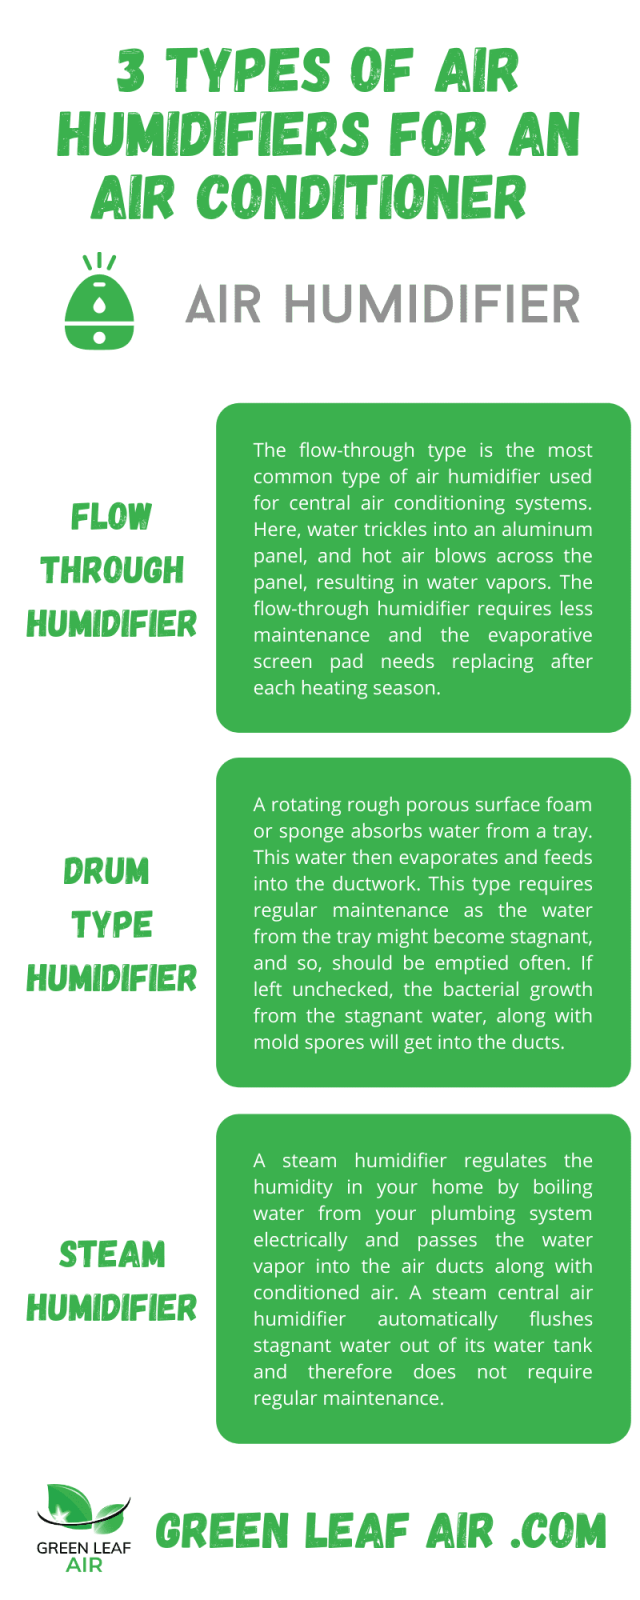 3 Types of Air Humidifiers for An Air Conditioner